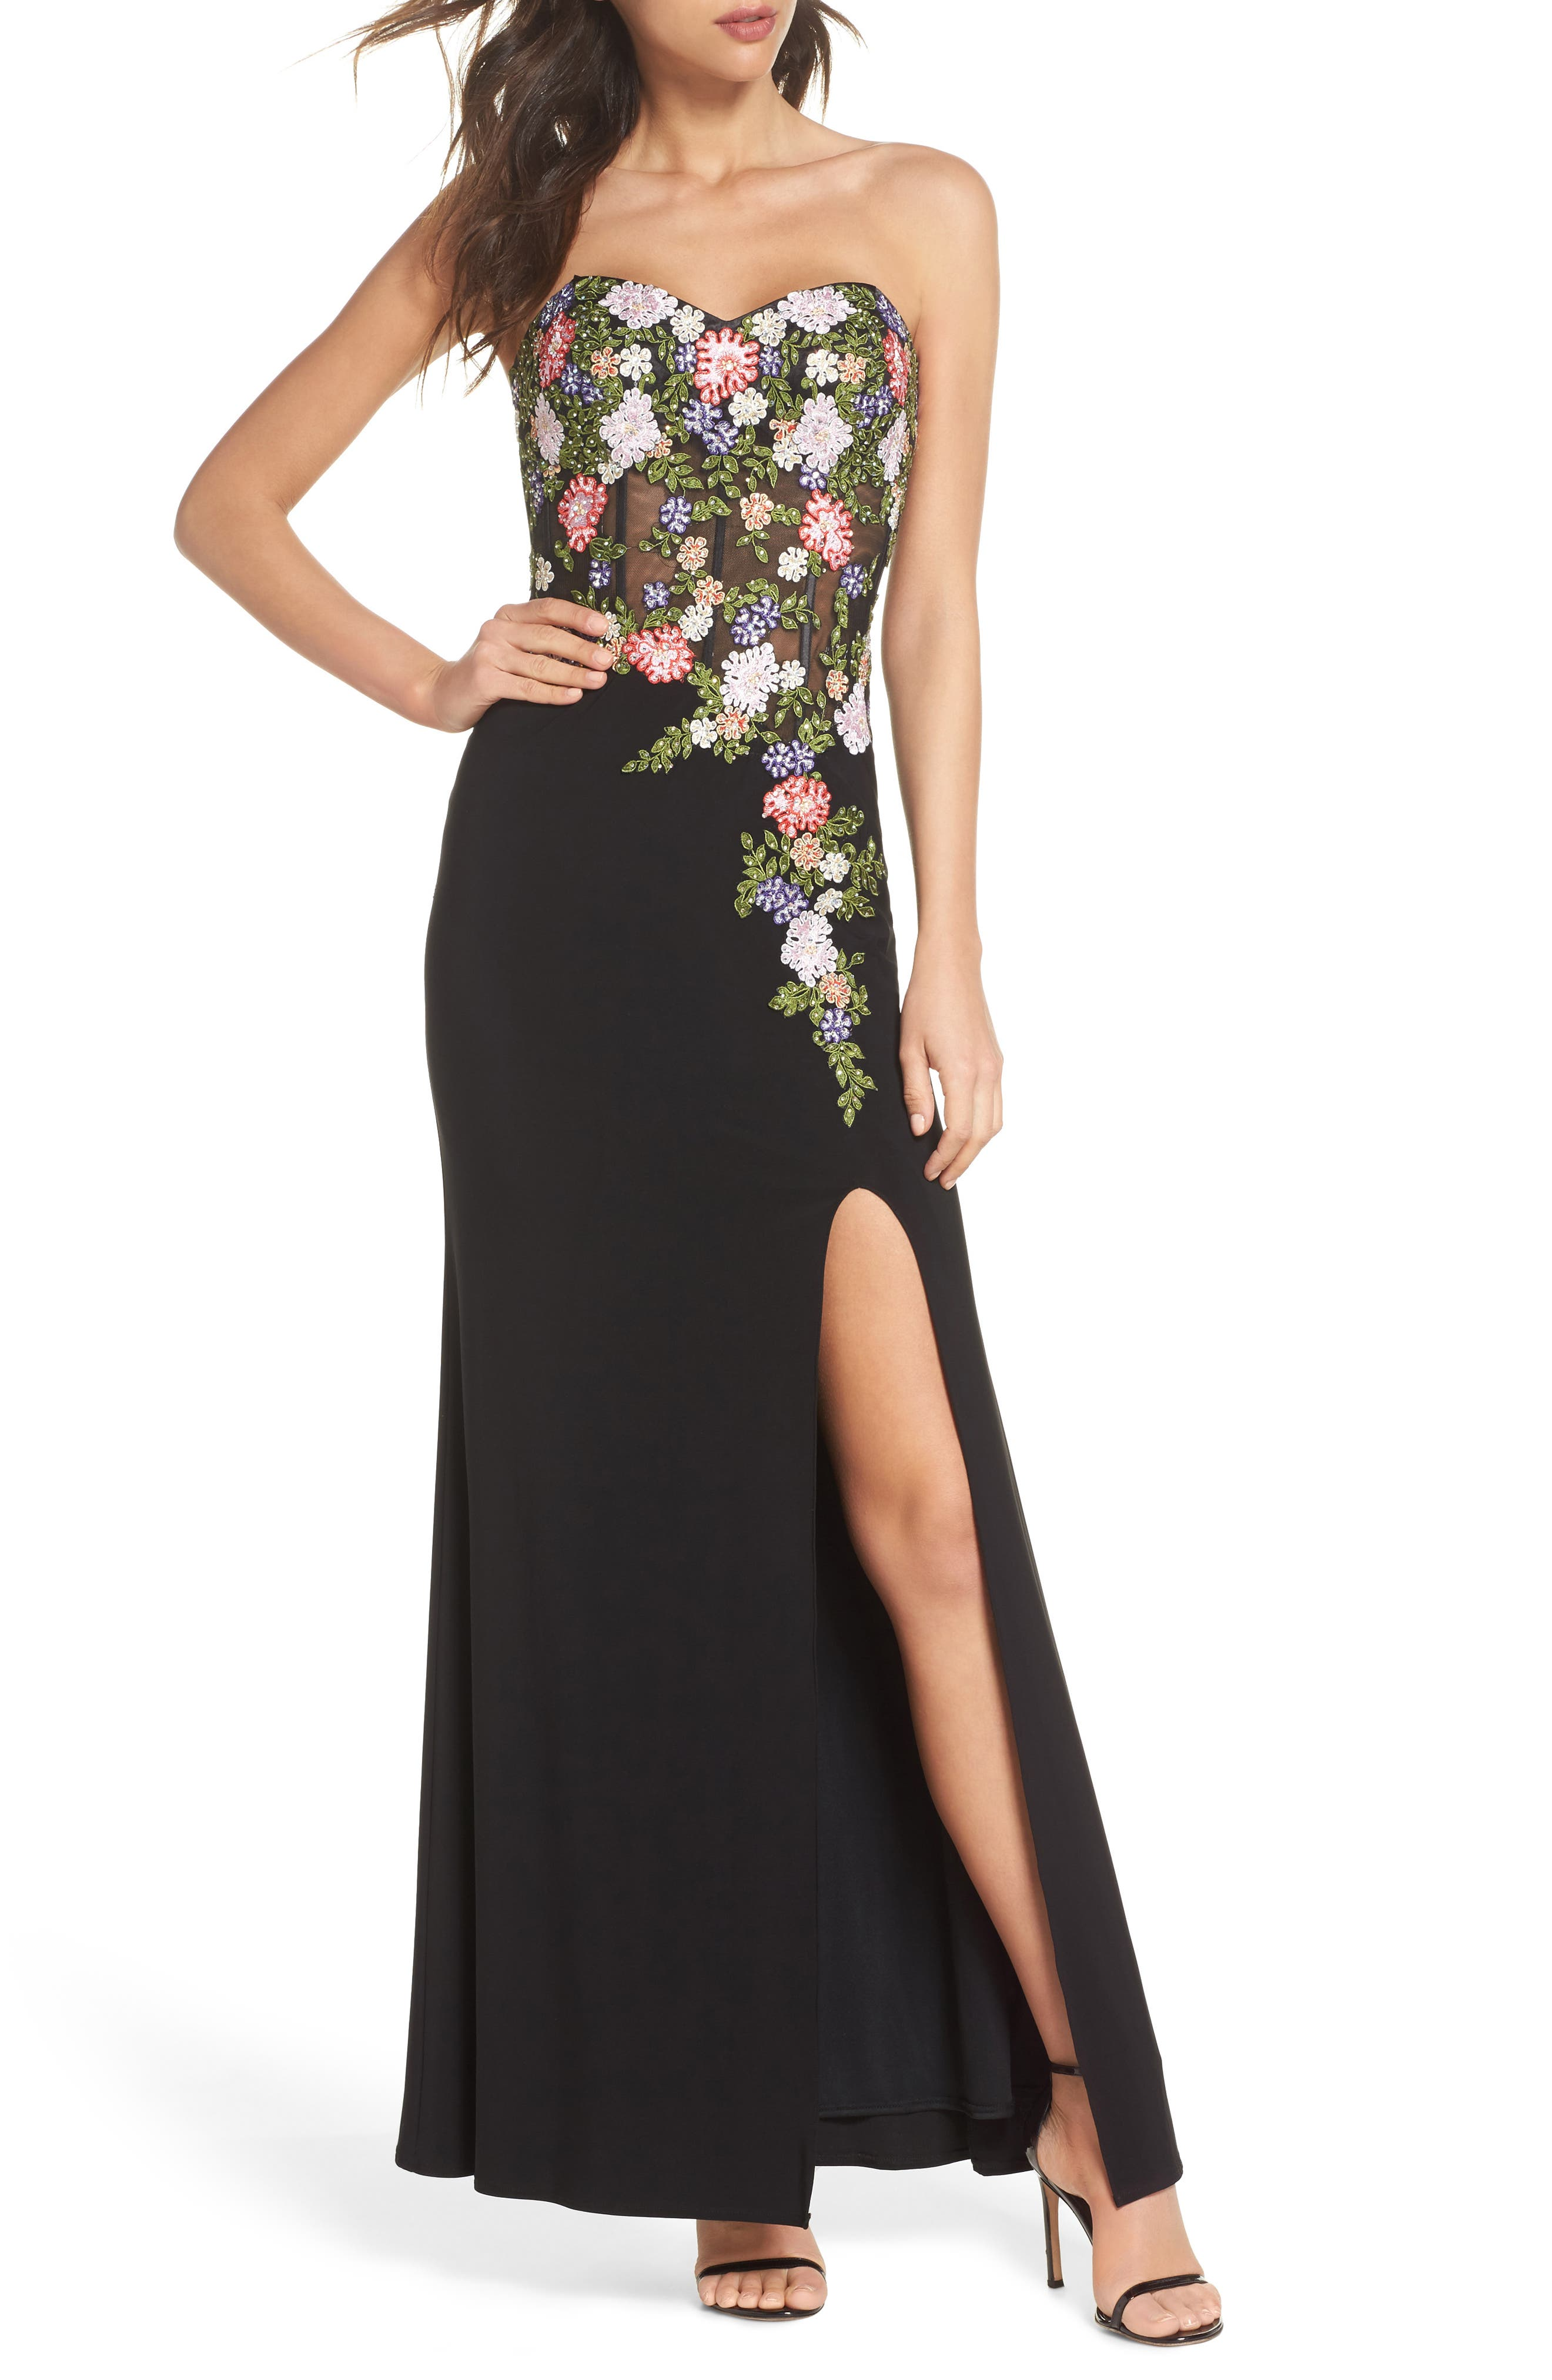 Embroidered Strapless Gown,                             Main thumbnail 1, color,                             Black/ Multi